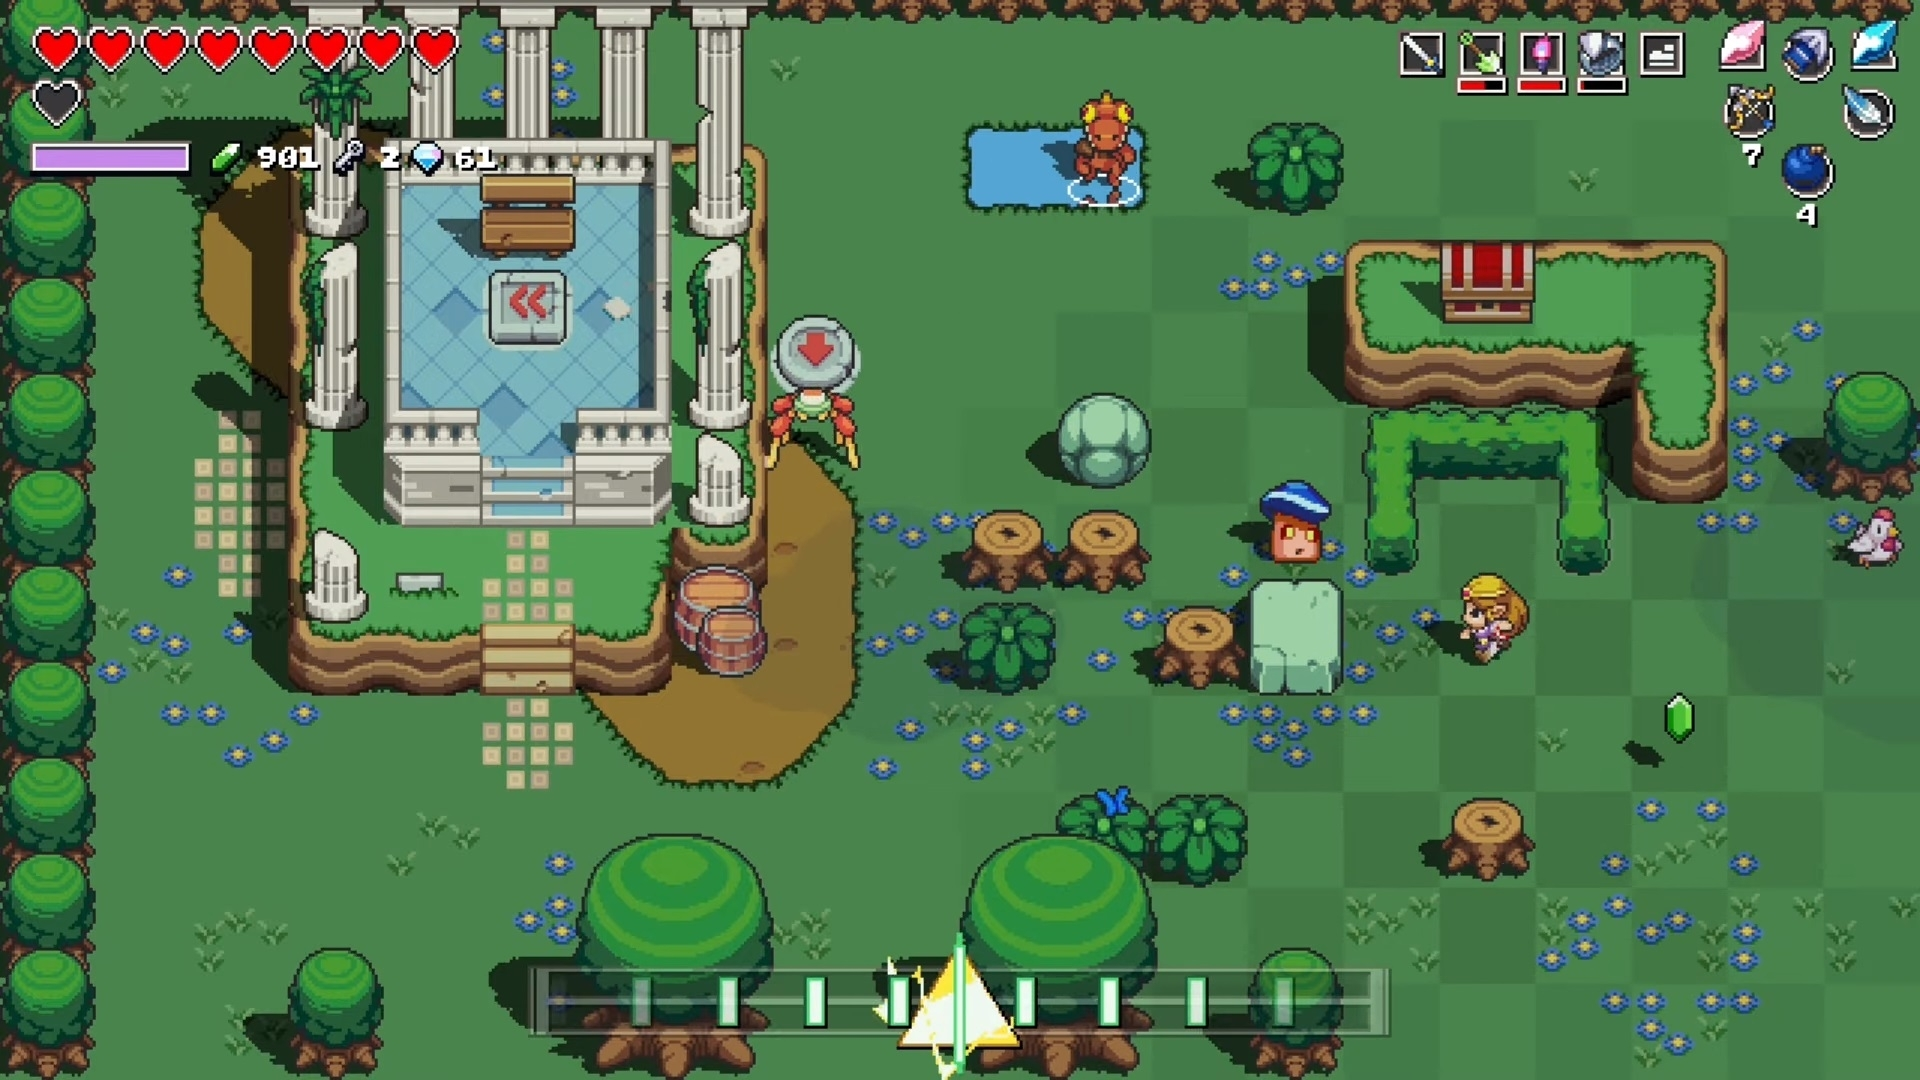 Скриншот из игры Cadence of Hyrule: Crypt of the NecroDancer featuring The Legend of Zelda под номером 3